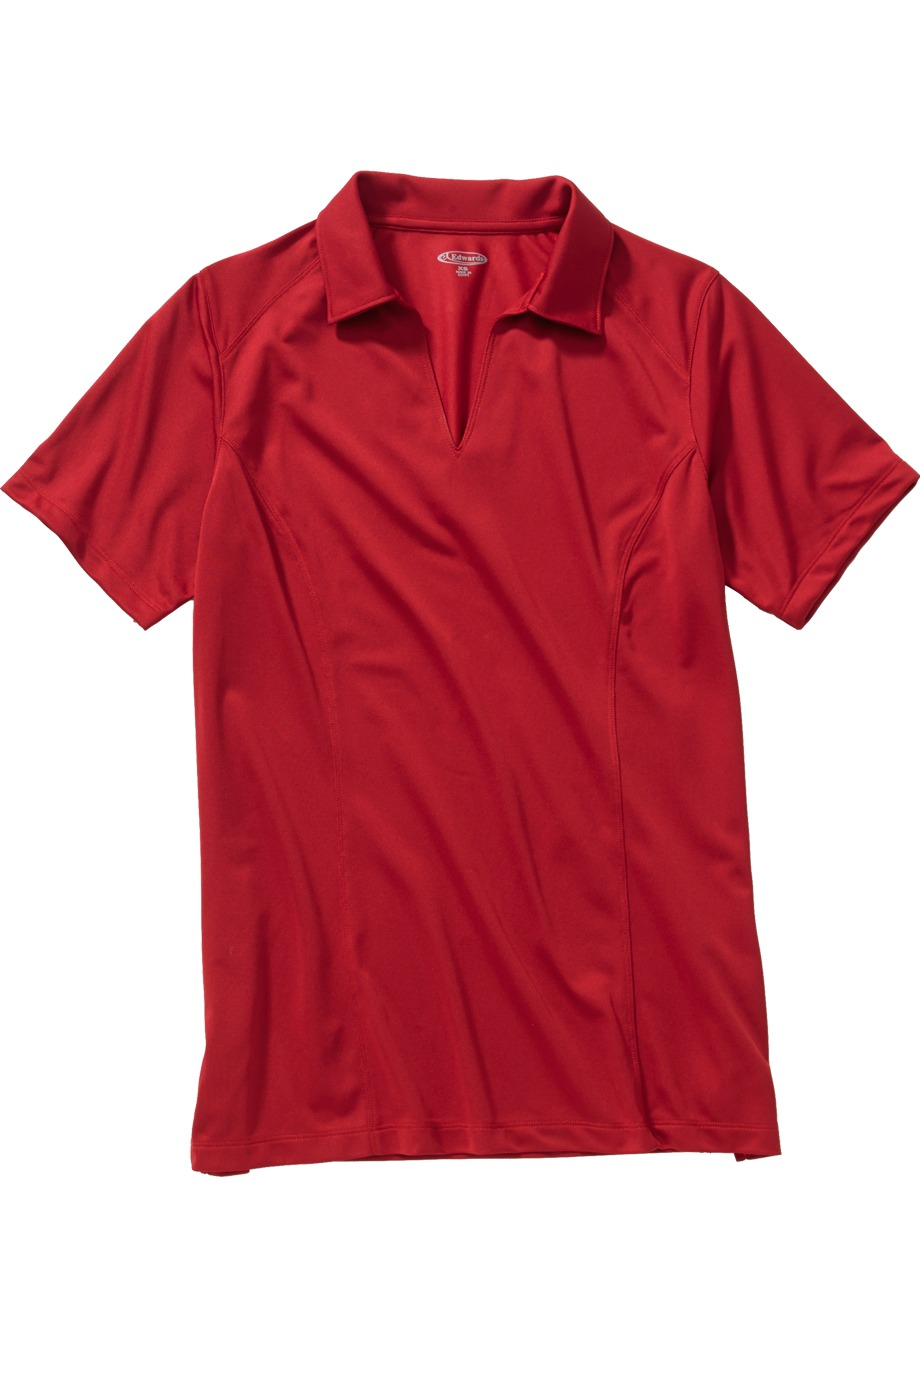 Edwards Garment 5516 - Ladies' Micro-Pique Polo With ...